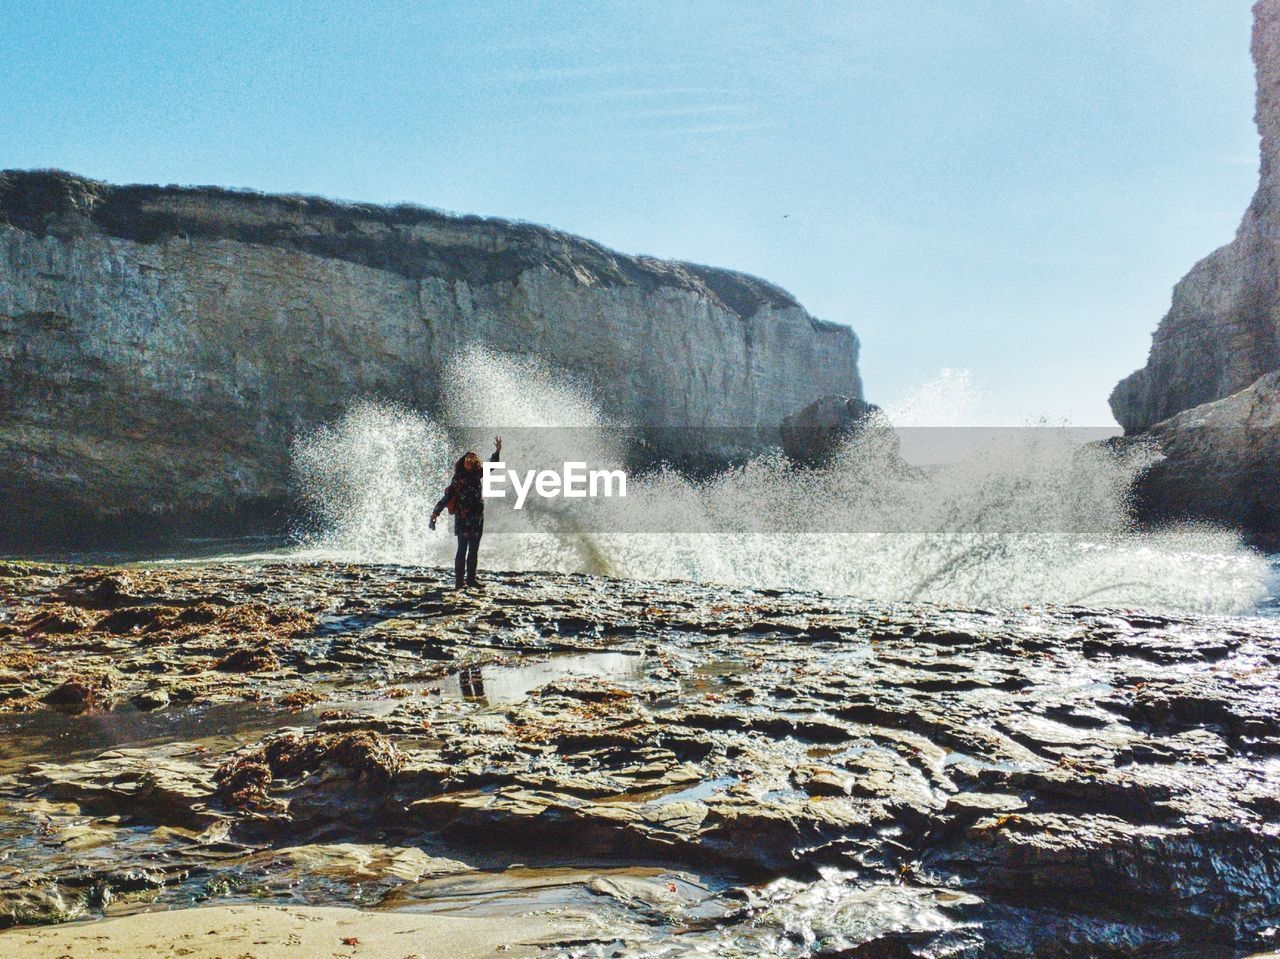 water, real people, nature, land, motion, sky, leisure activity, day, one person, lifestyles, beauty in nature, scenics - nature, rock, sea, men, full length, solid, rock - object, outdoors, power in nature